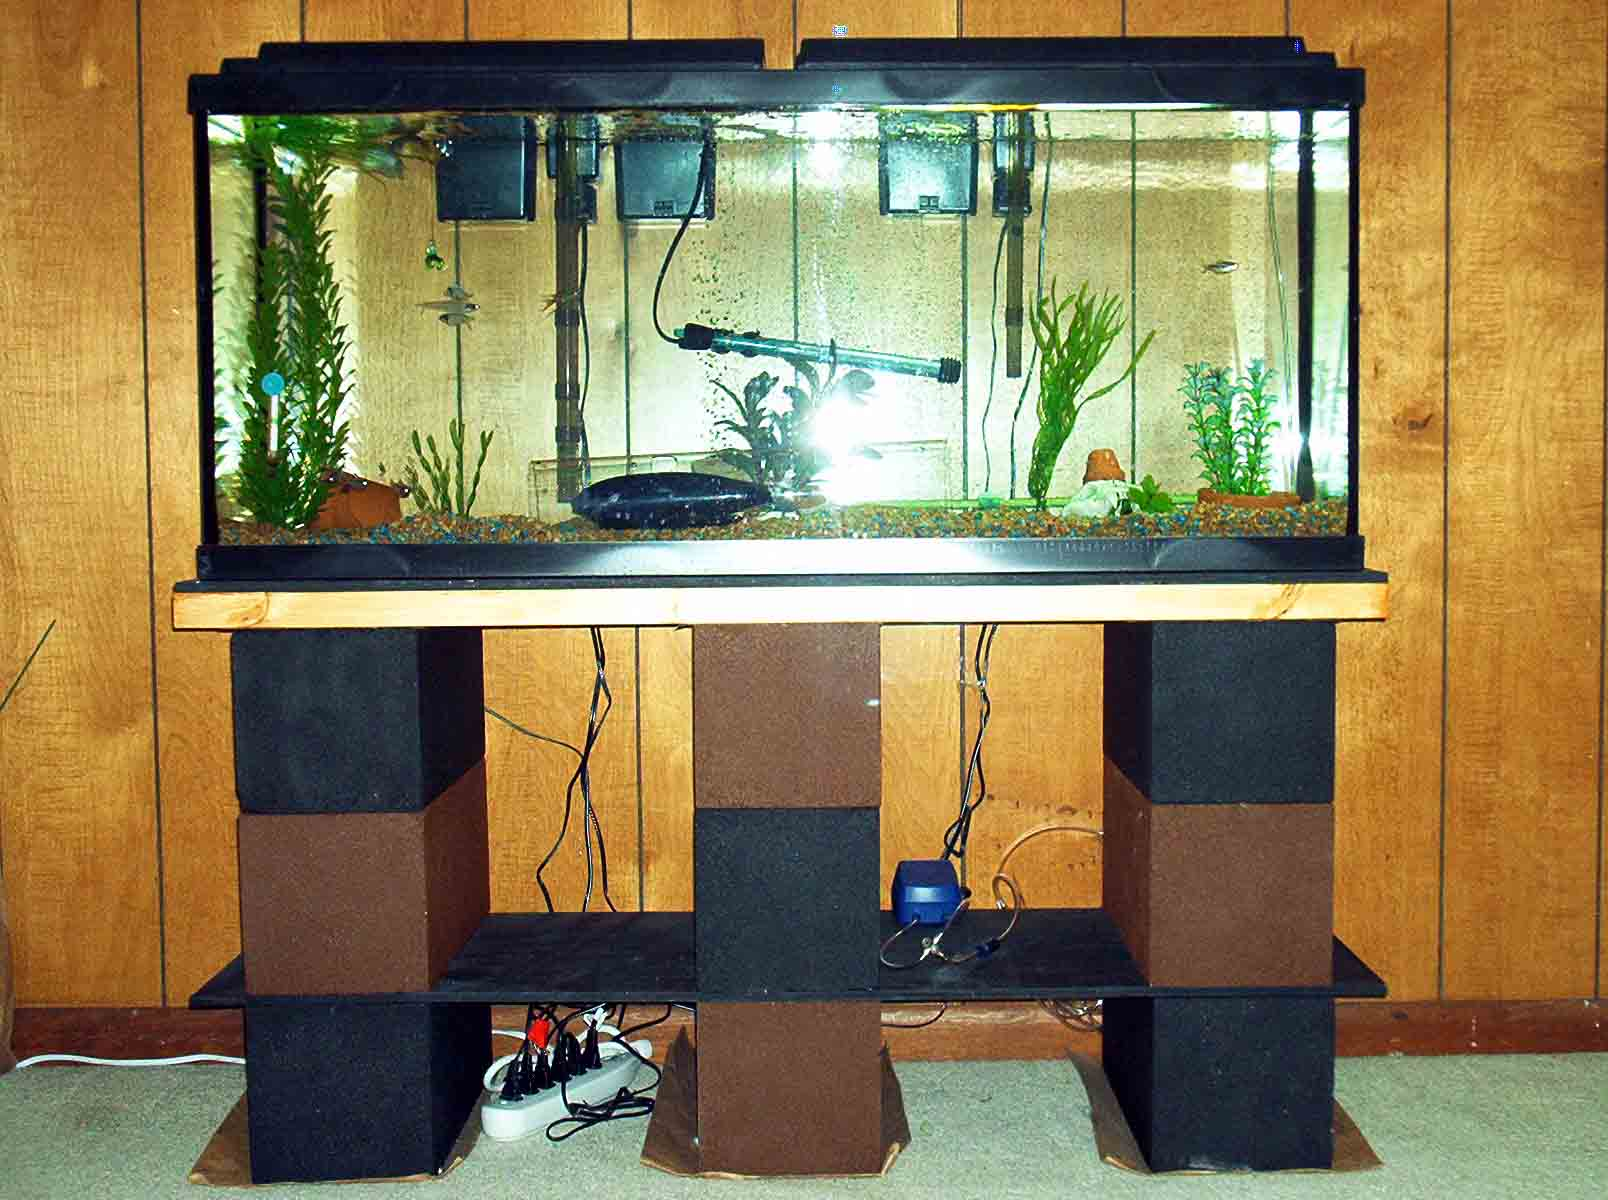 55 Gallon Aquarium Stand Plans